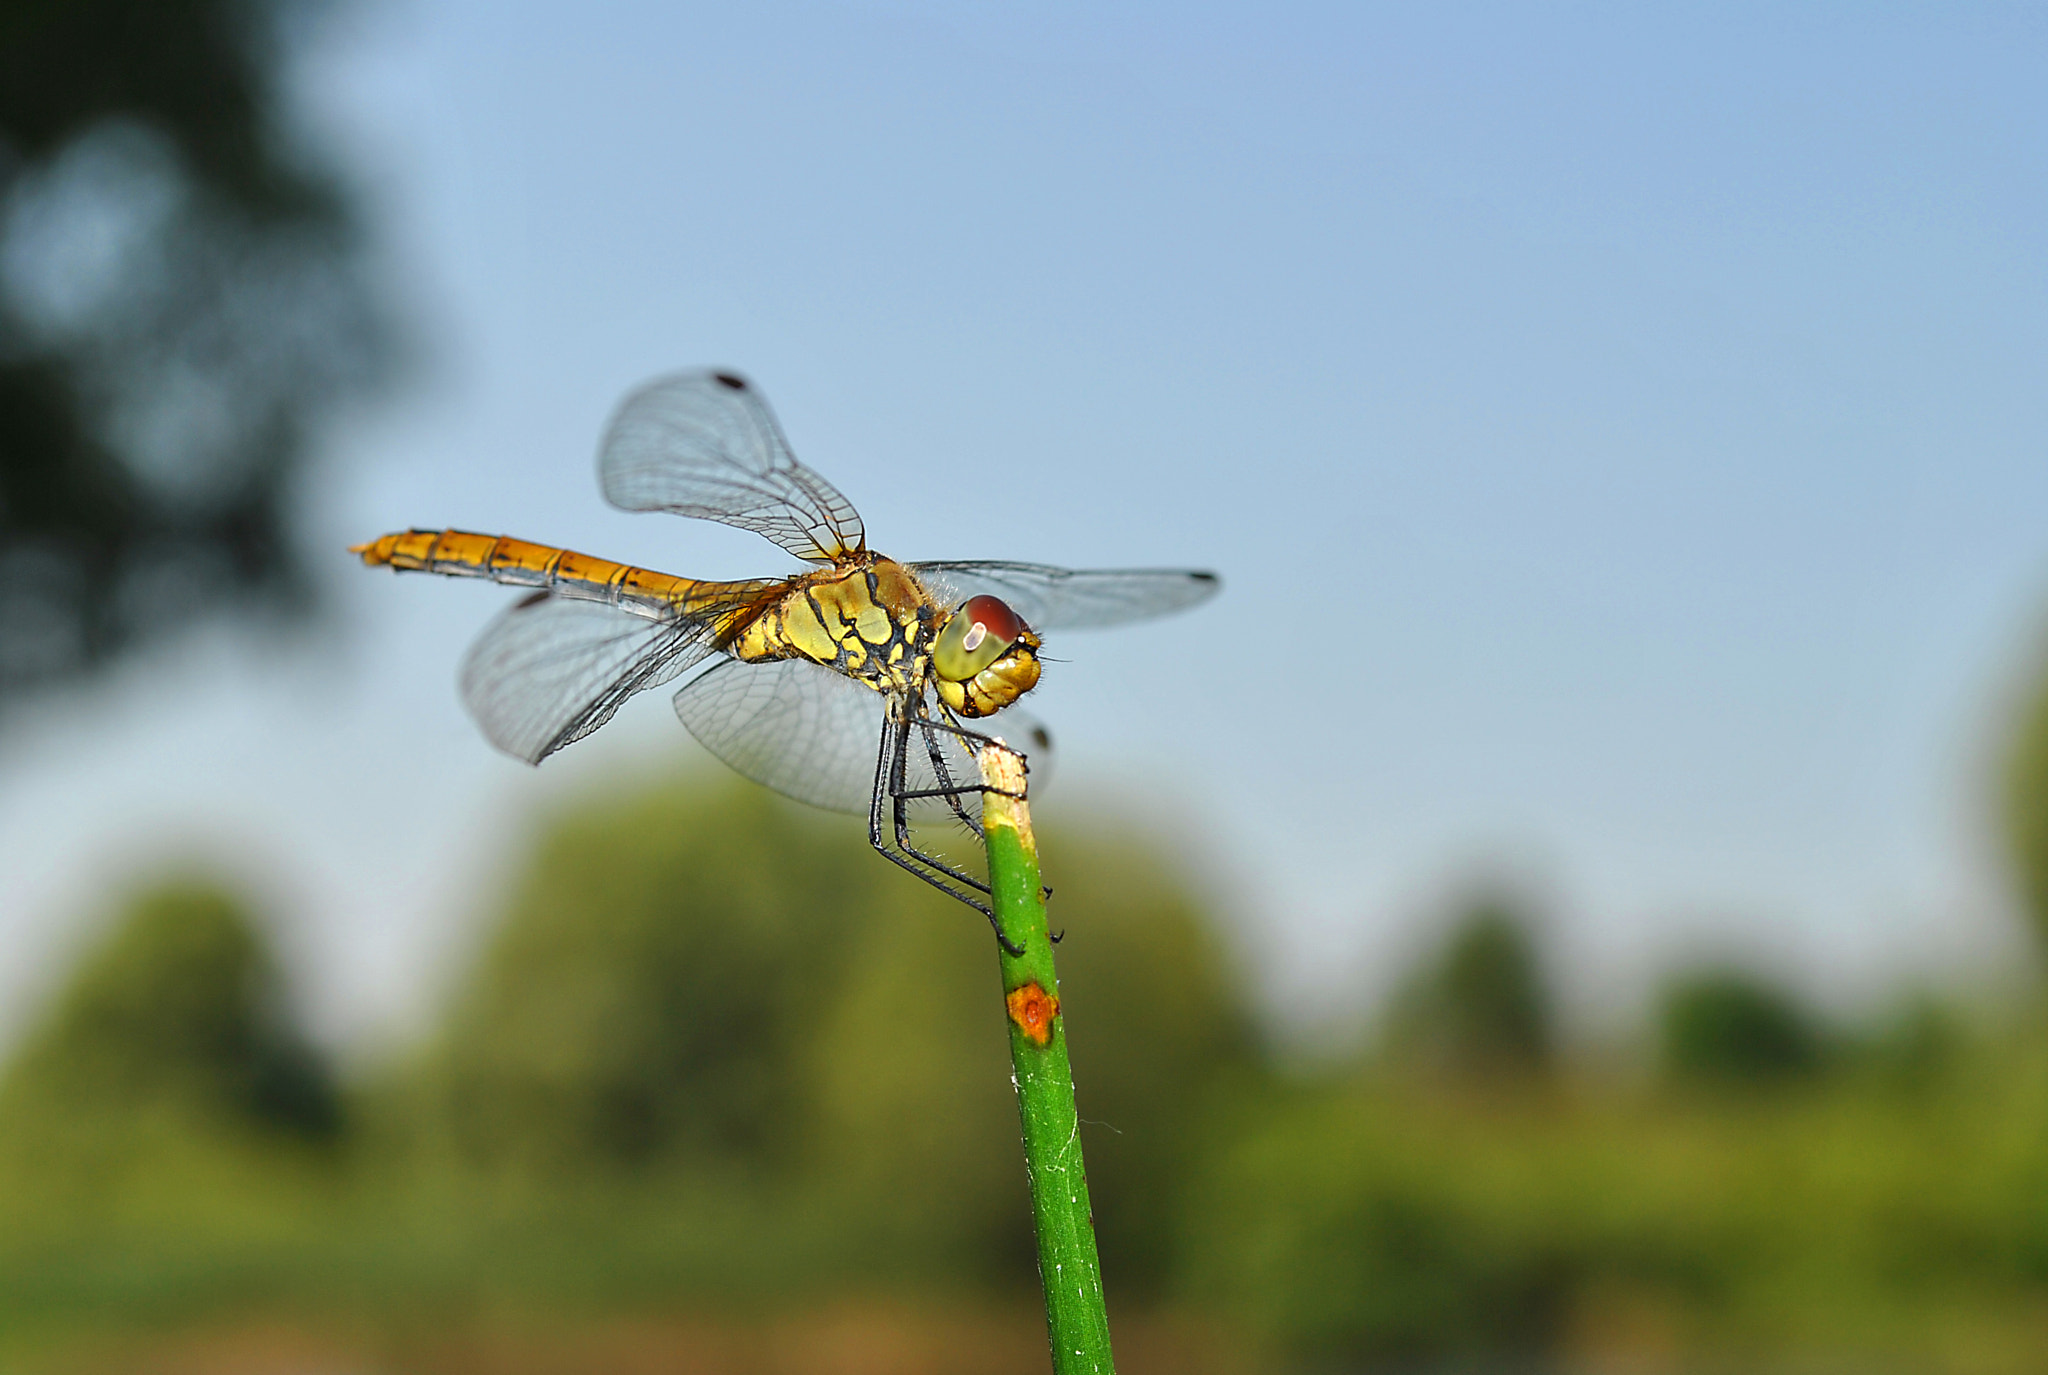 Photograph dragonfly by Tatiana Borisenko on 500px